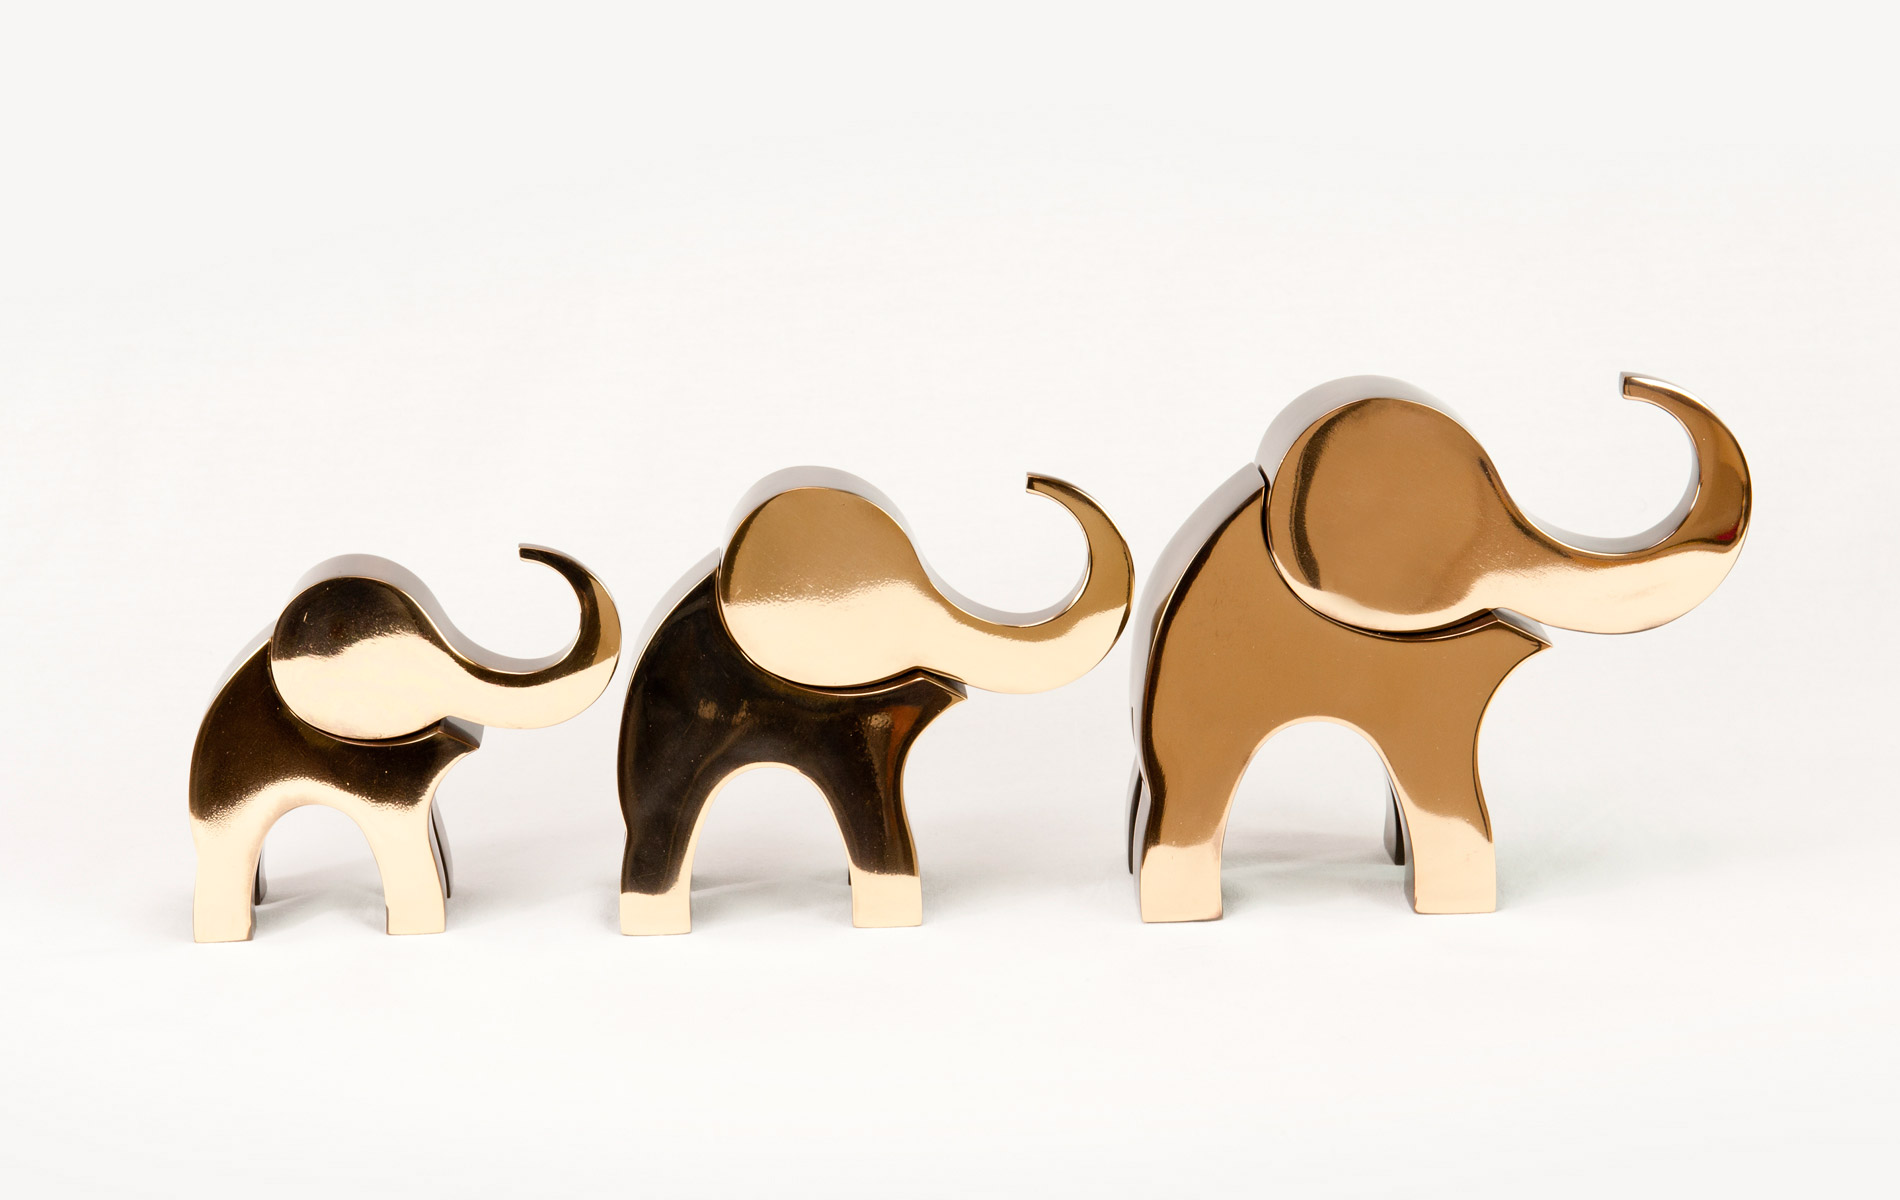 METAL ELEPHANTS / Unicodesign by Stefano Palcani